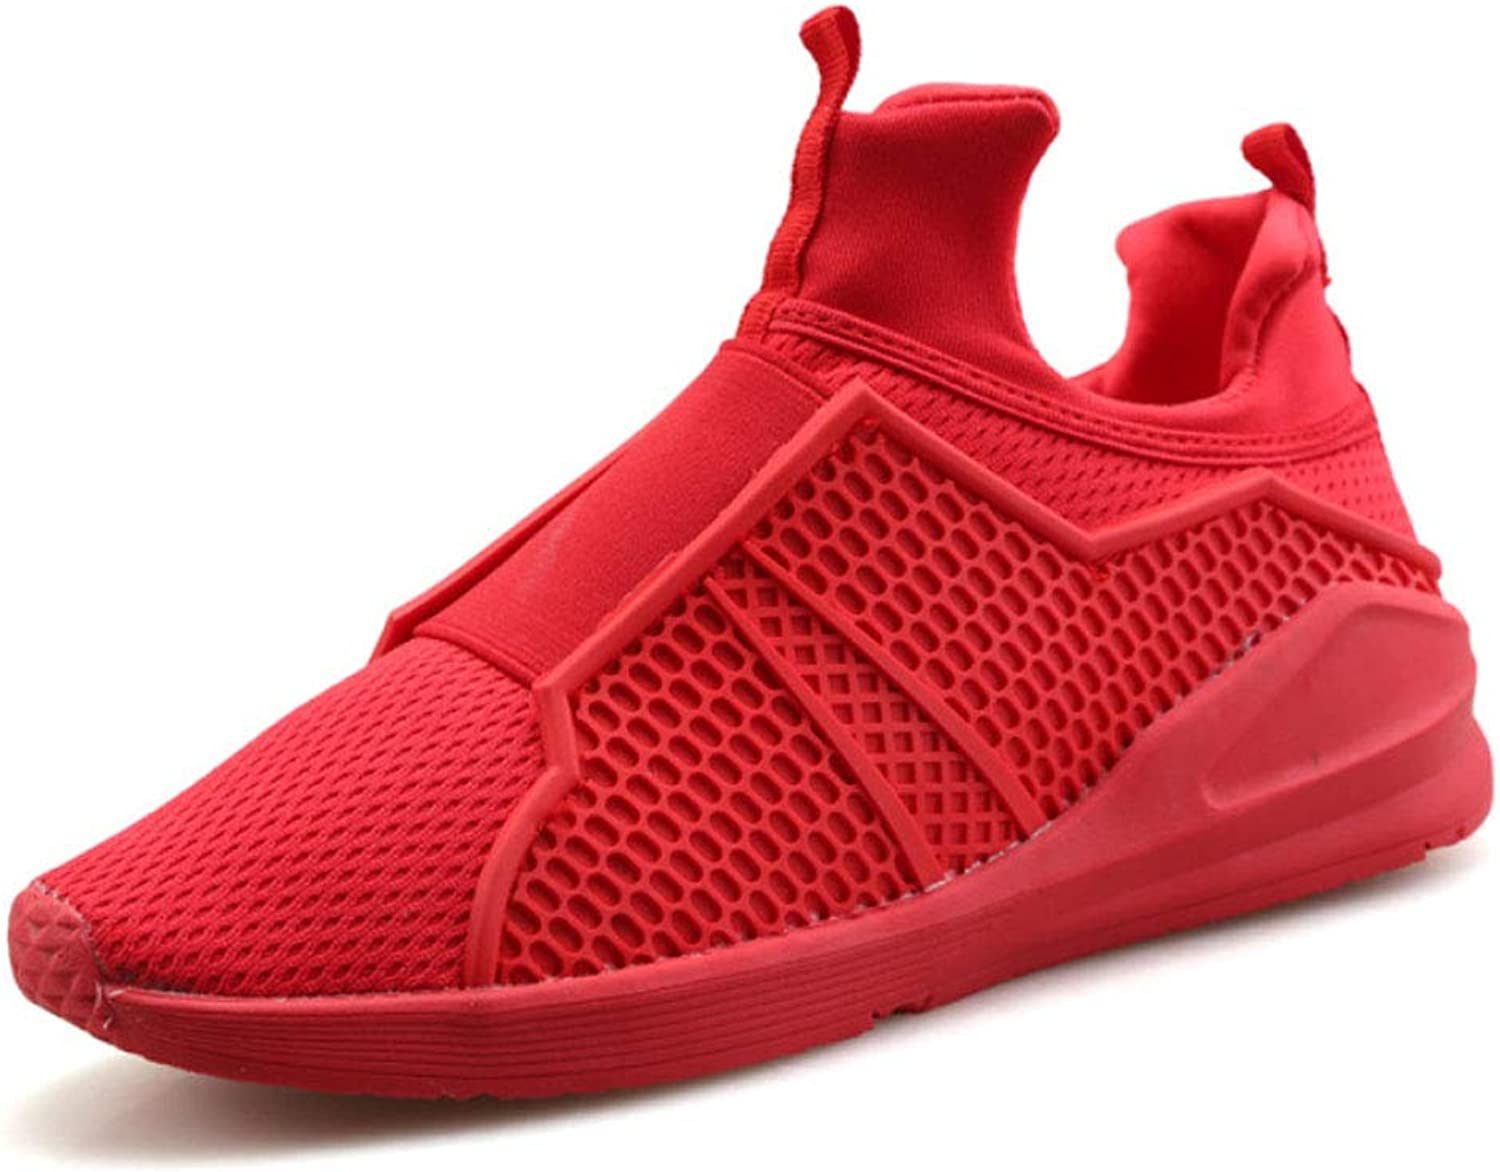 JHHXW Casual shoes hollow mesh shoes sports wind breathable comfortable leisure lazy shoes student tide male